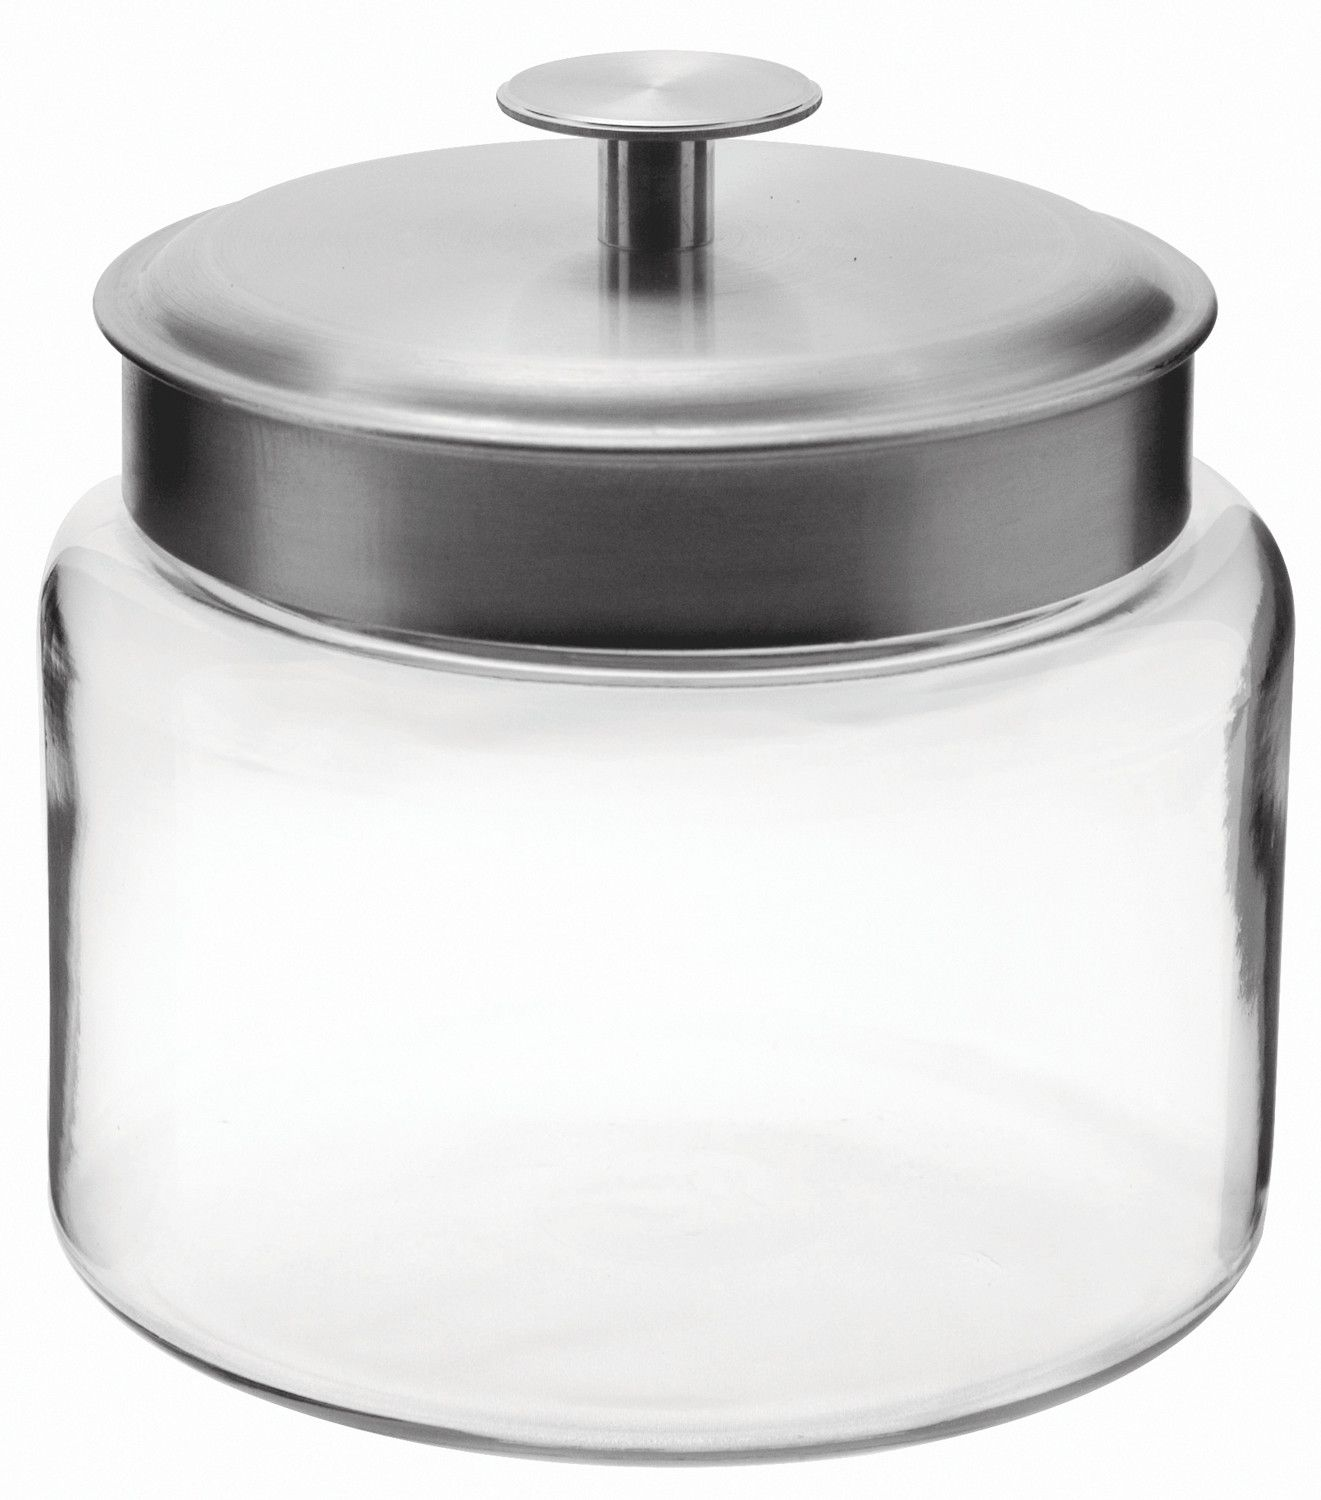 Montana Food Kitchen Canister (Set of 2) | Products | Pinterest ...